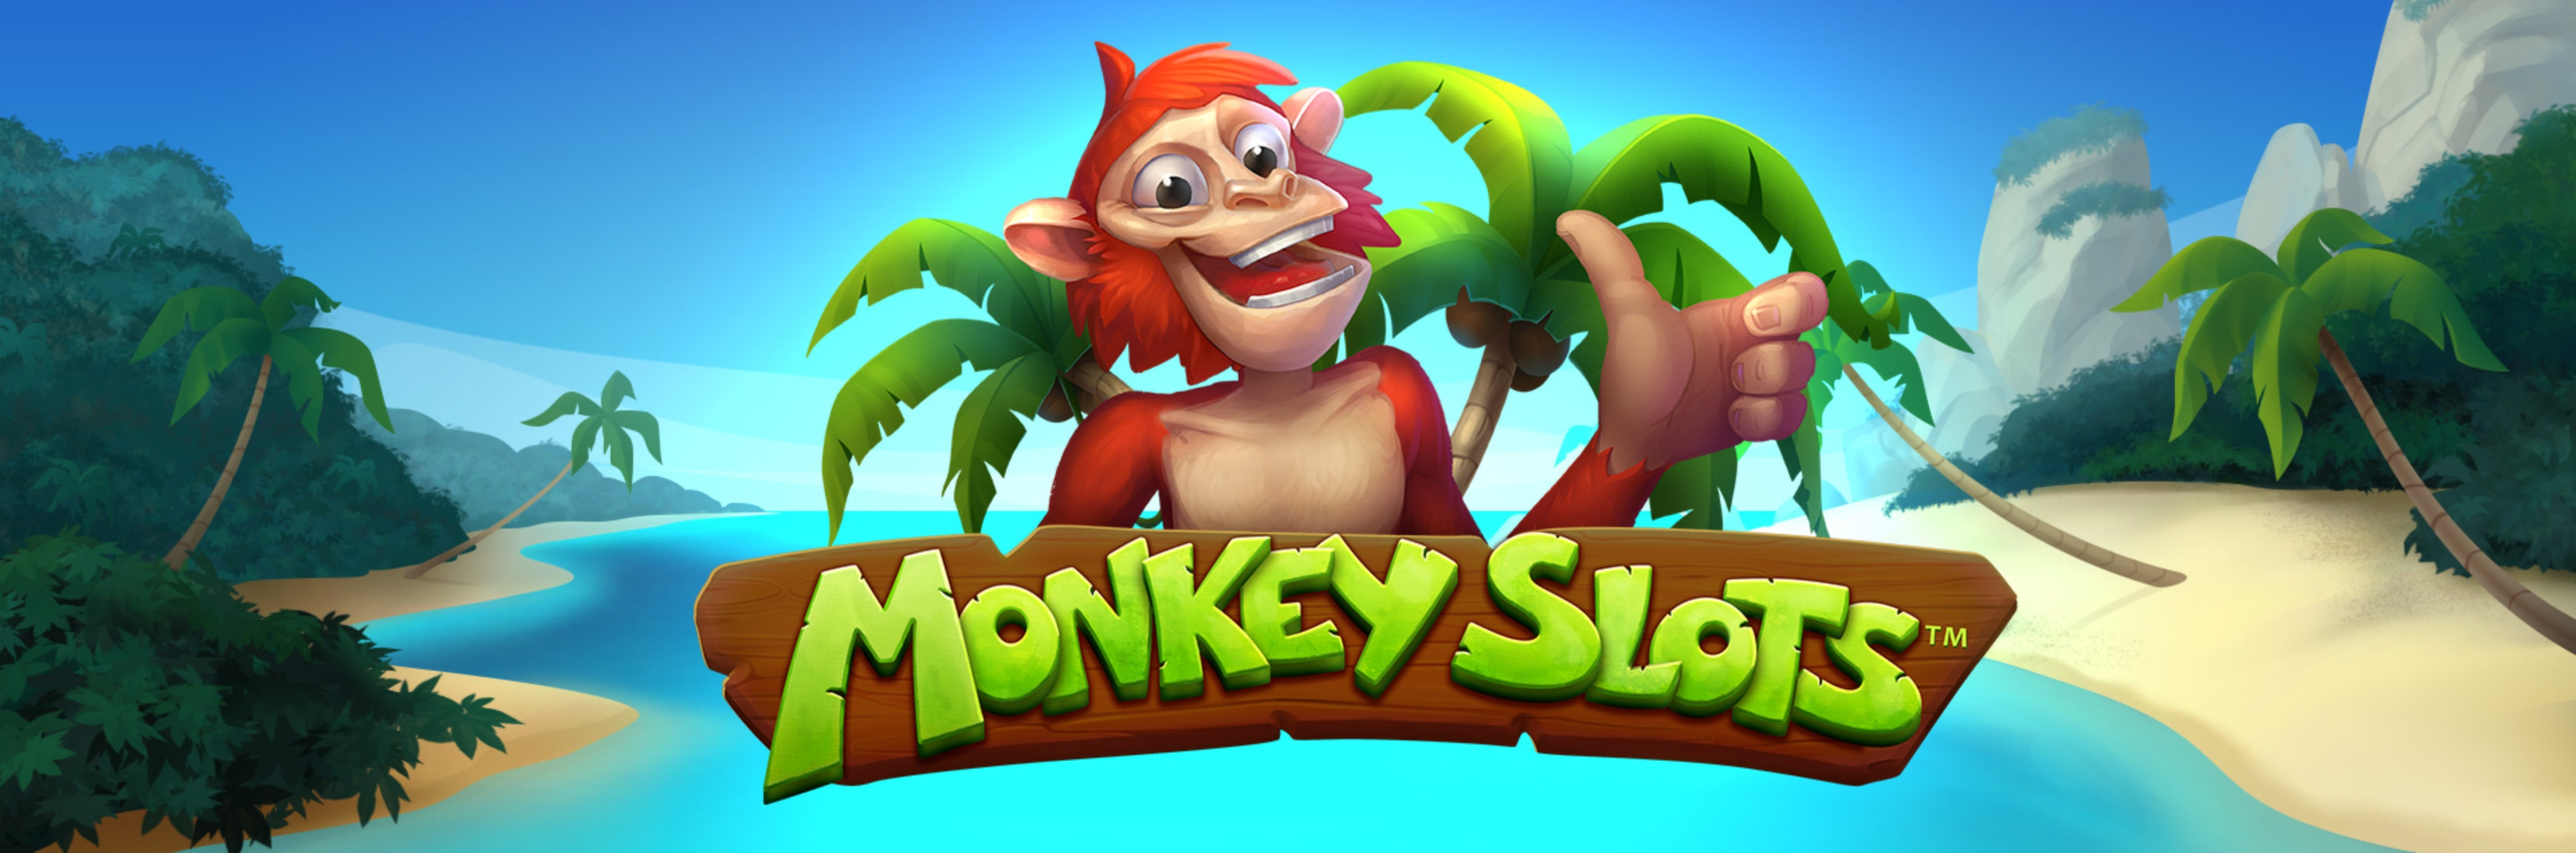 The Monkey Slots Online Slot Demo Game by Synot Games